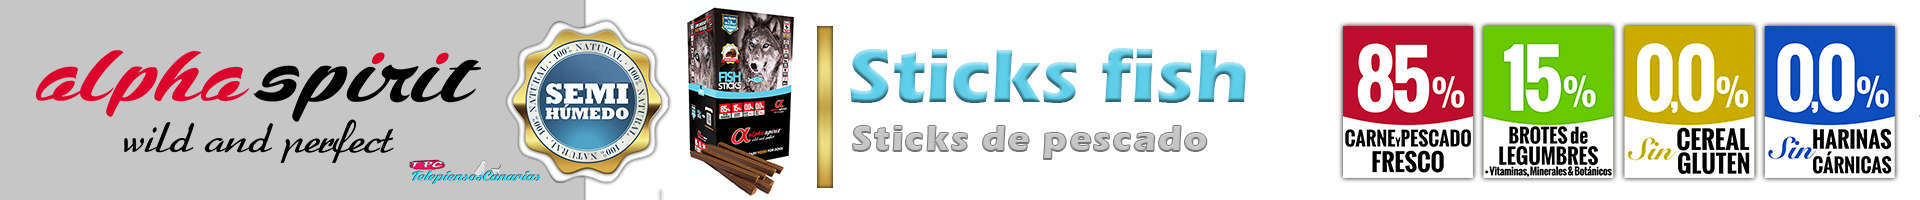 Alpha Spirit sticks fish, alimento con omega 3 y 6